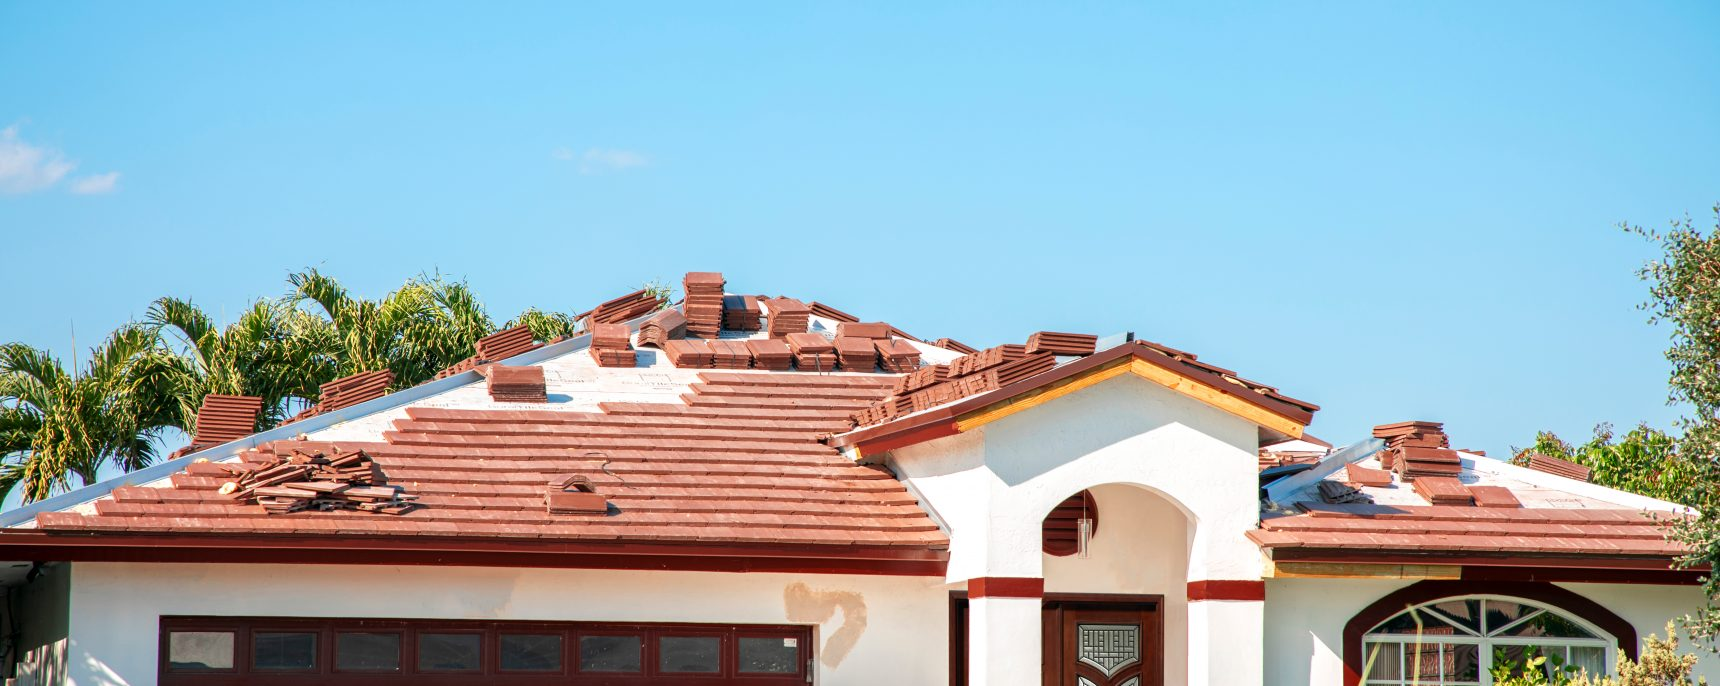 Arizona roofing contractor provides roofing company in Phoenix services